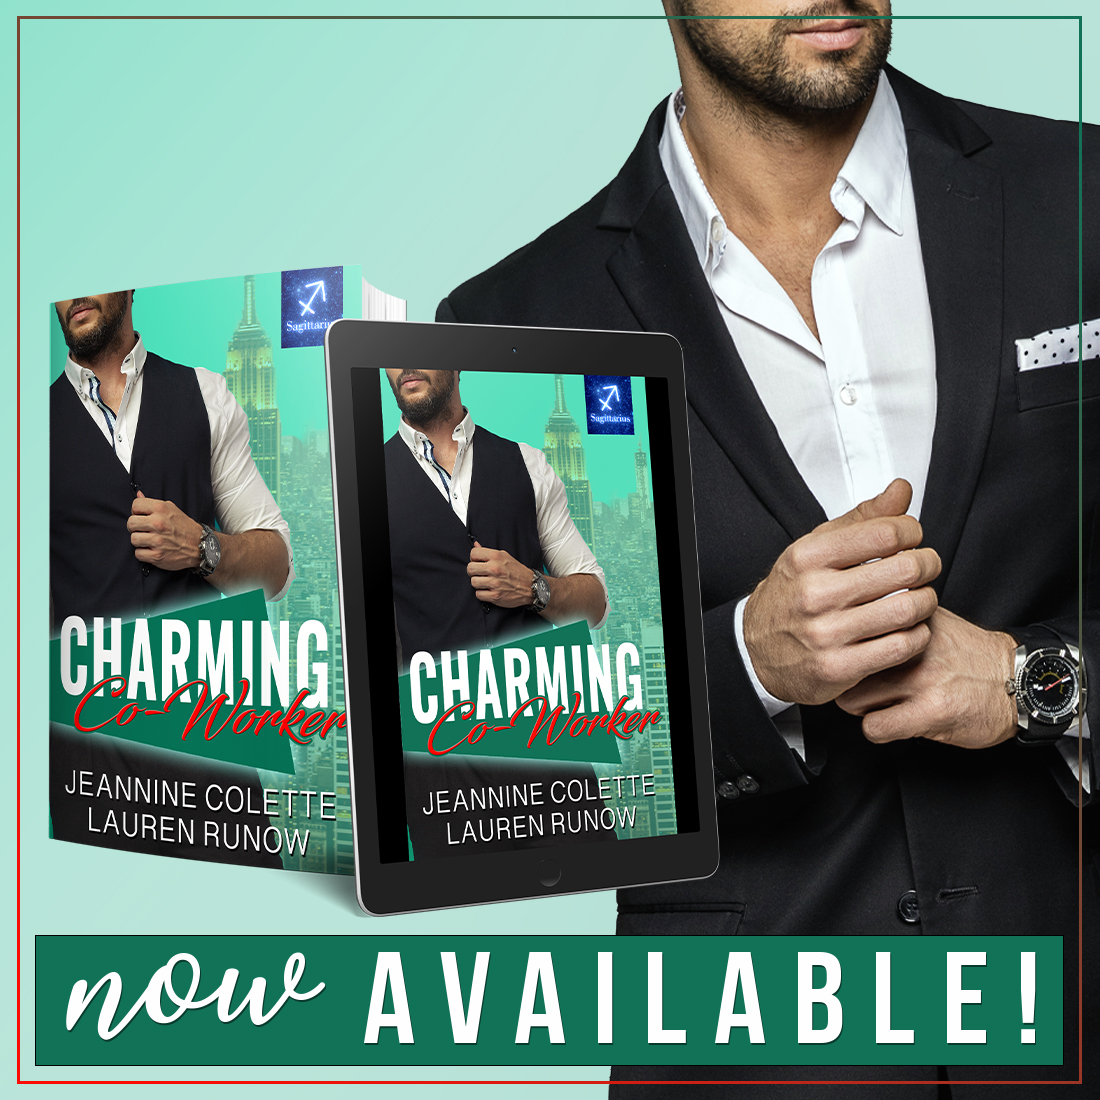 charmingco-worker-nowavailable-1